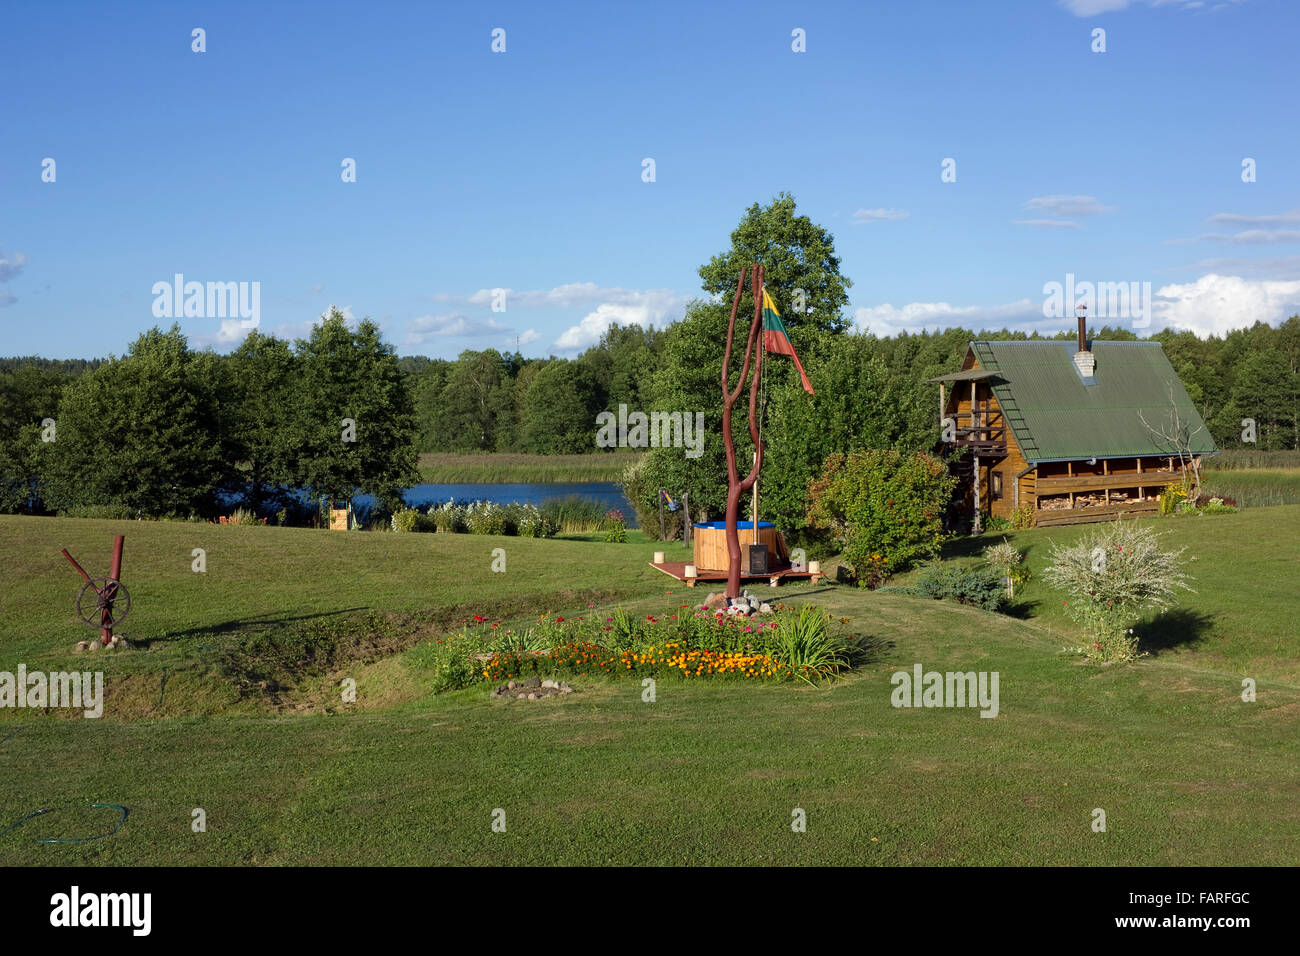 stock photo vilnius lithuania august 29 2015 lithuanian flag and flowers bed near the tourists rustic hotel and bath in a year lithu - Rustic Hotel 2015